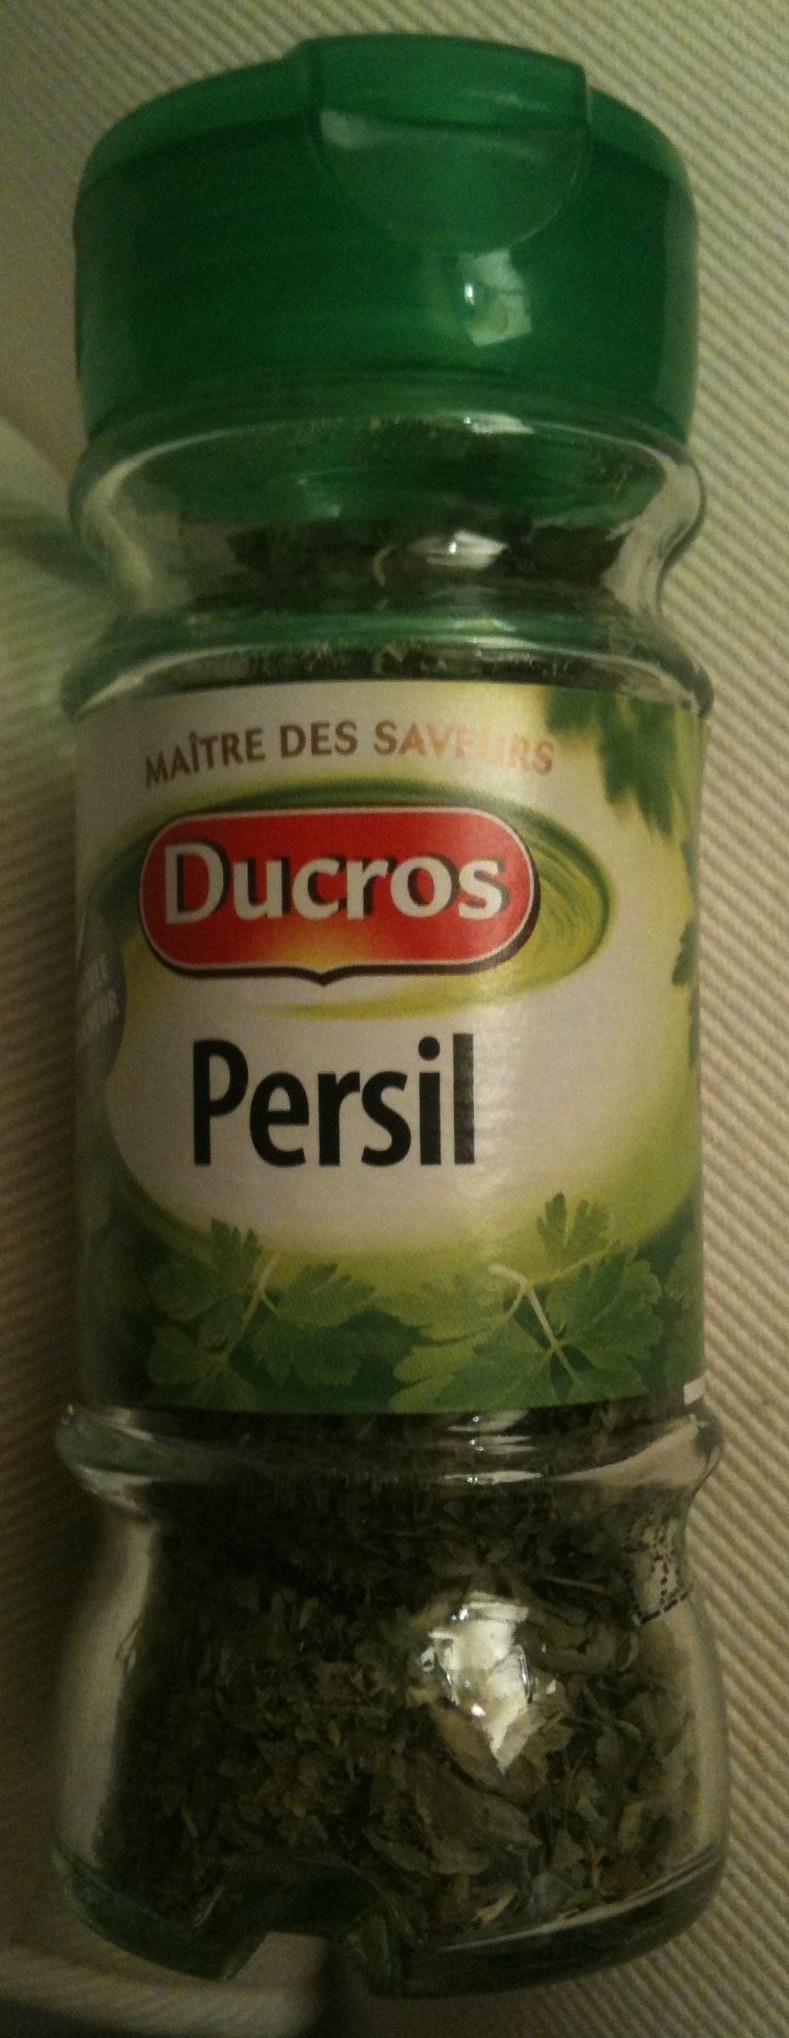 Persil - Product